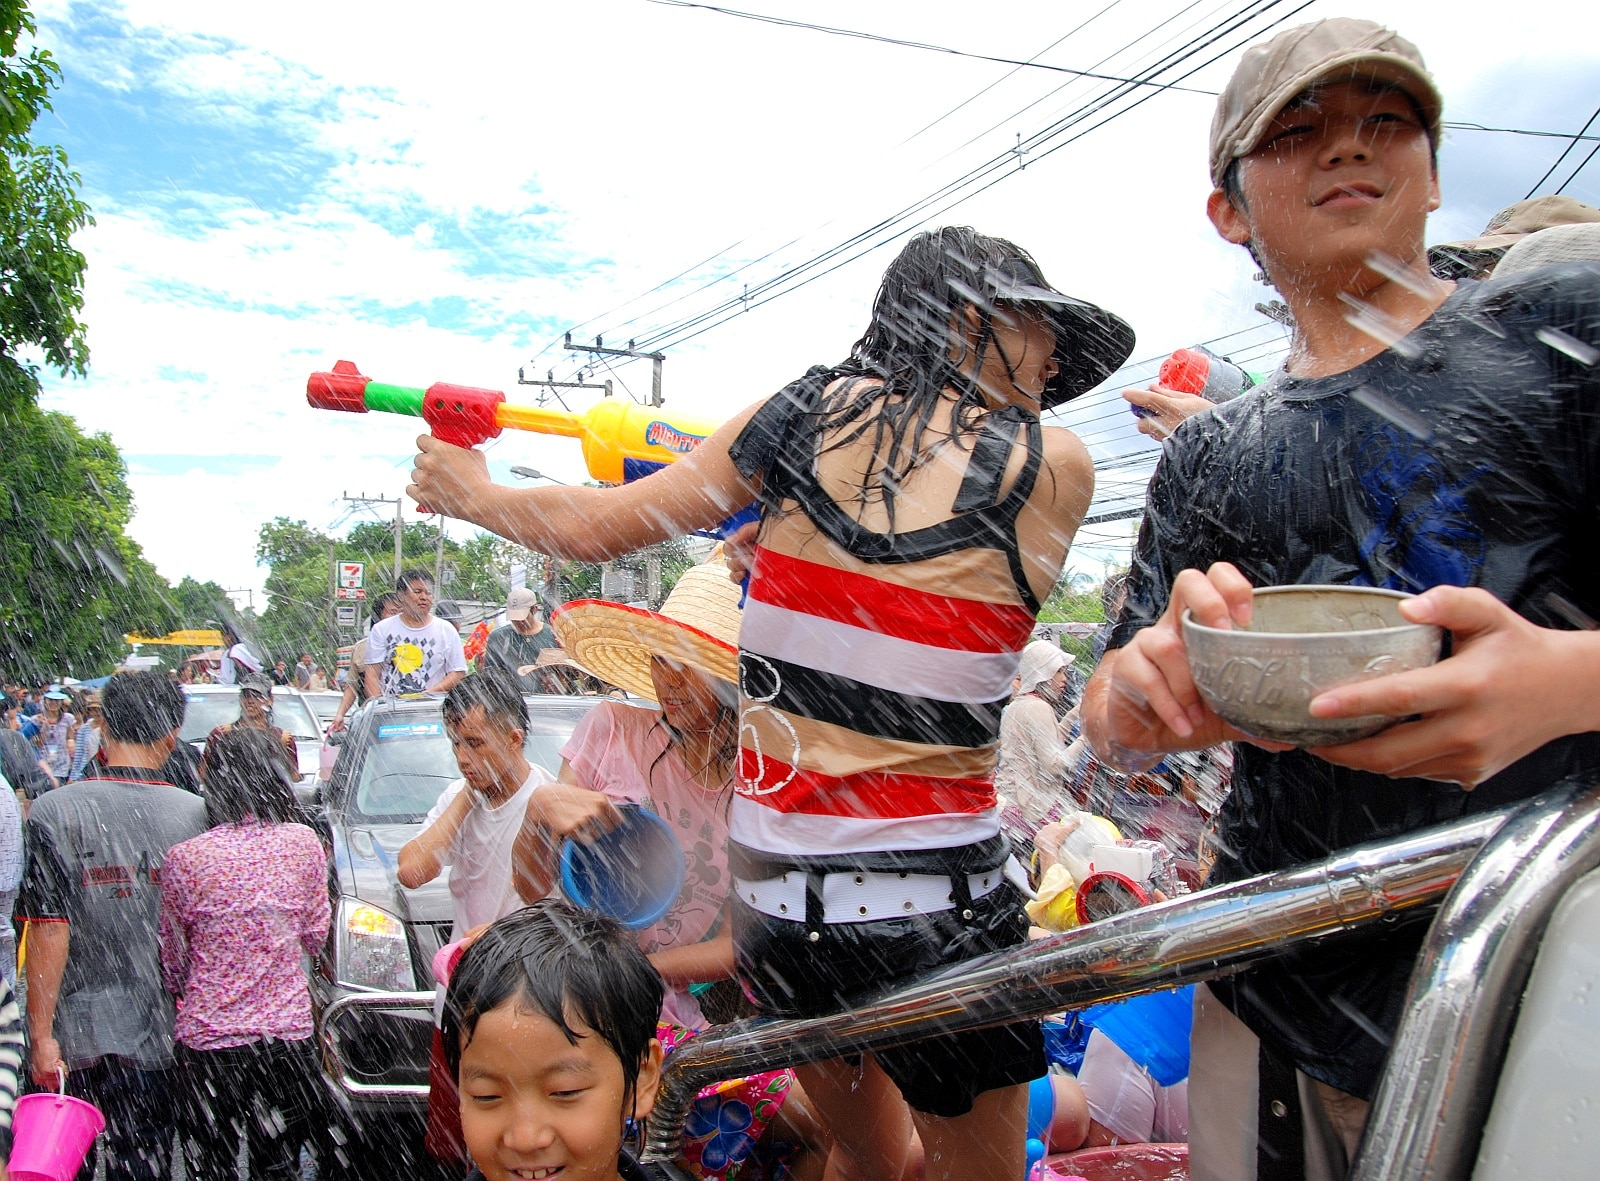 Songkran Water Festival - 8 Festivals From Around The World To Add To Your Bucket List